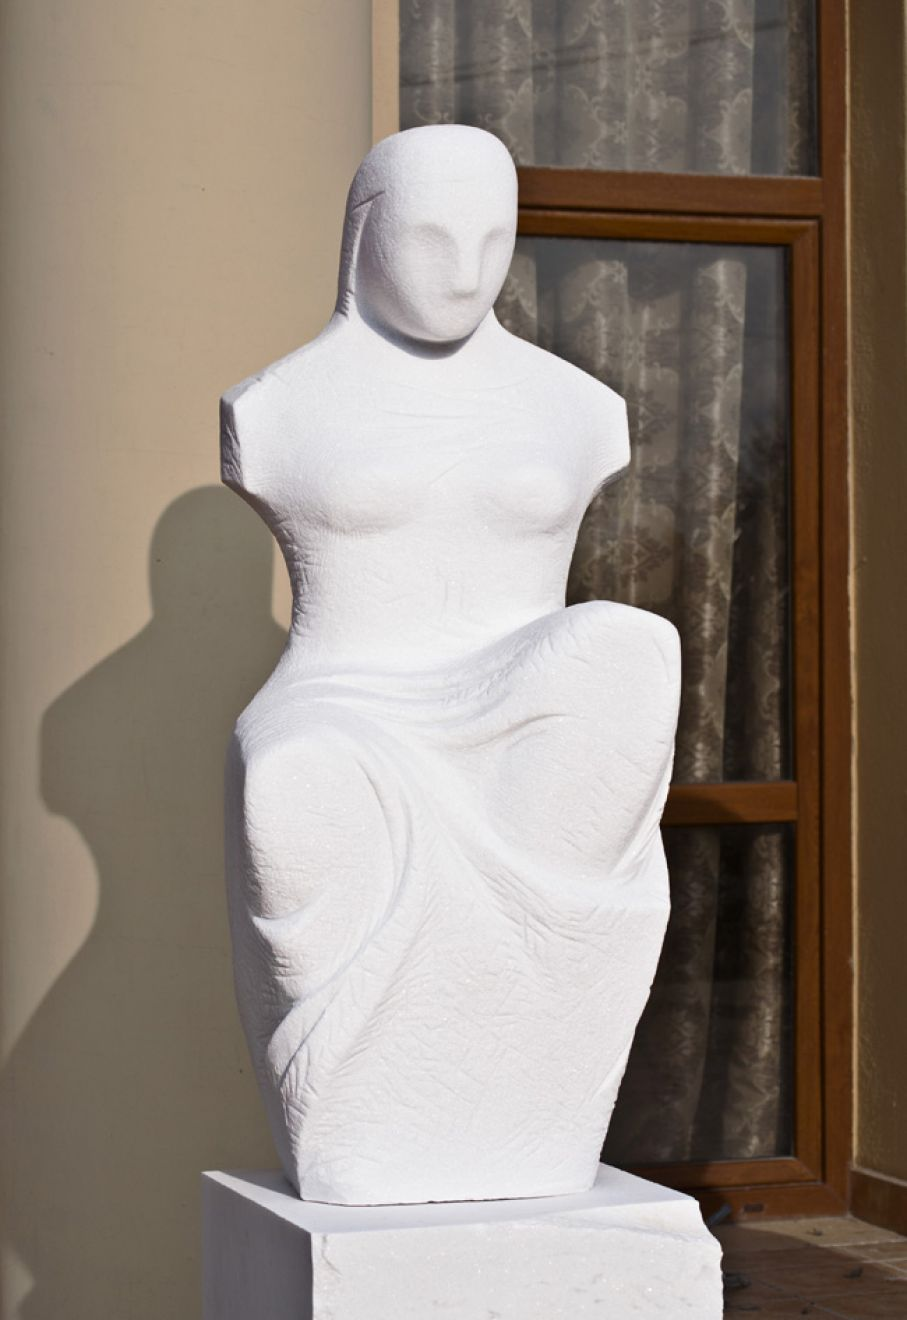 Original marble sculpture of Odysseas Tosounidis, completed within Myrό Antiques House premises, in Souroti, Thessaloniki, GREECE, as part of the Greek Marble Initiative. Dimensions: 100X40X40 cm (without a base).